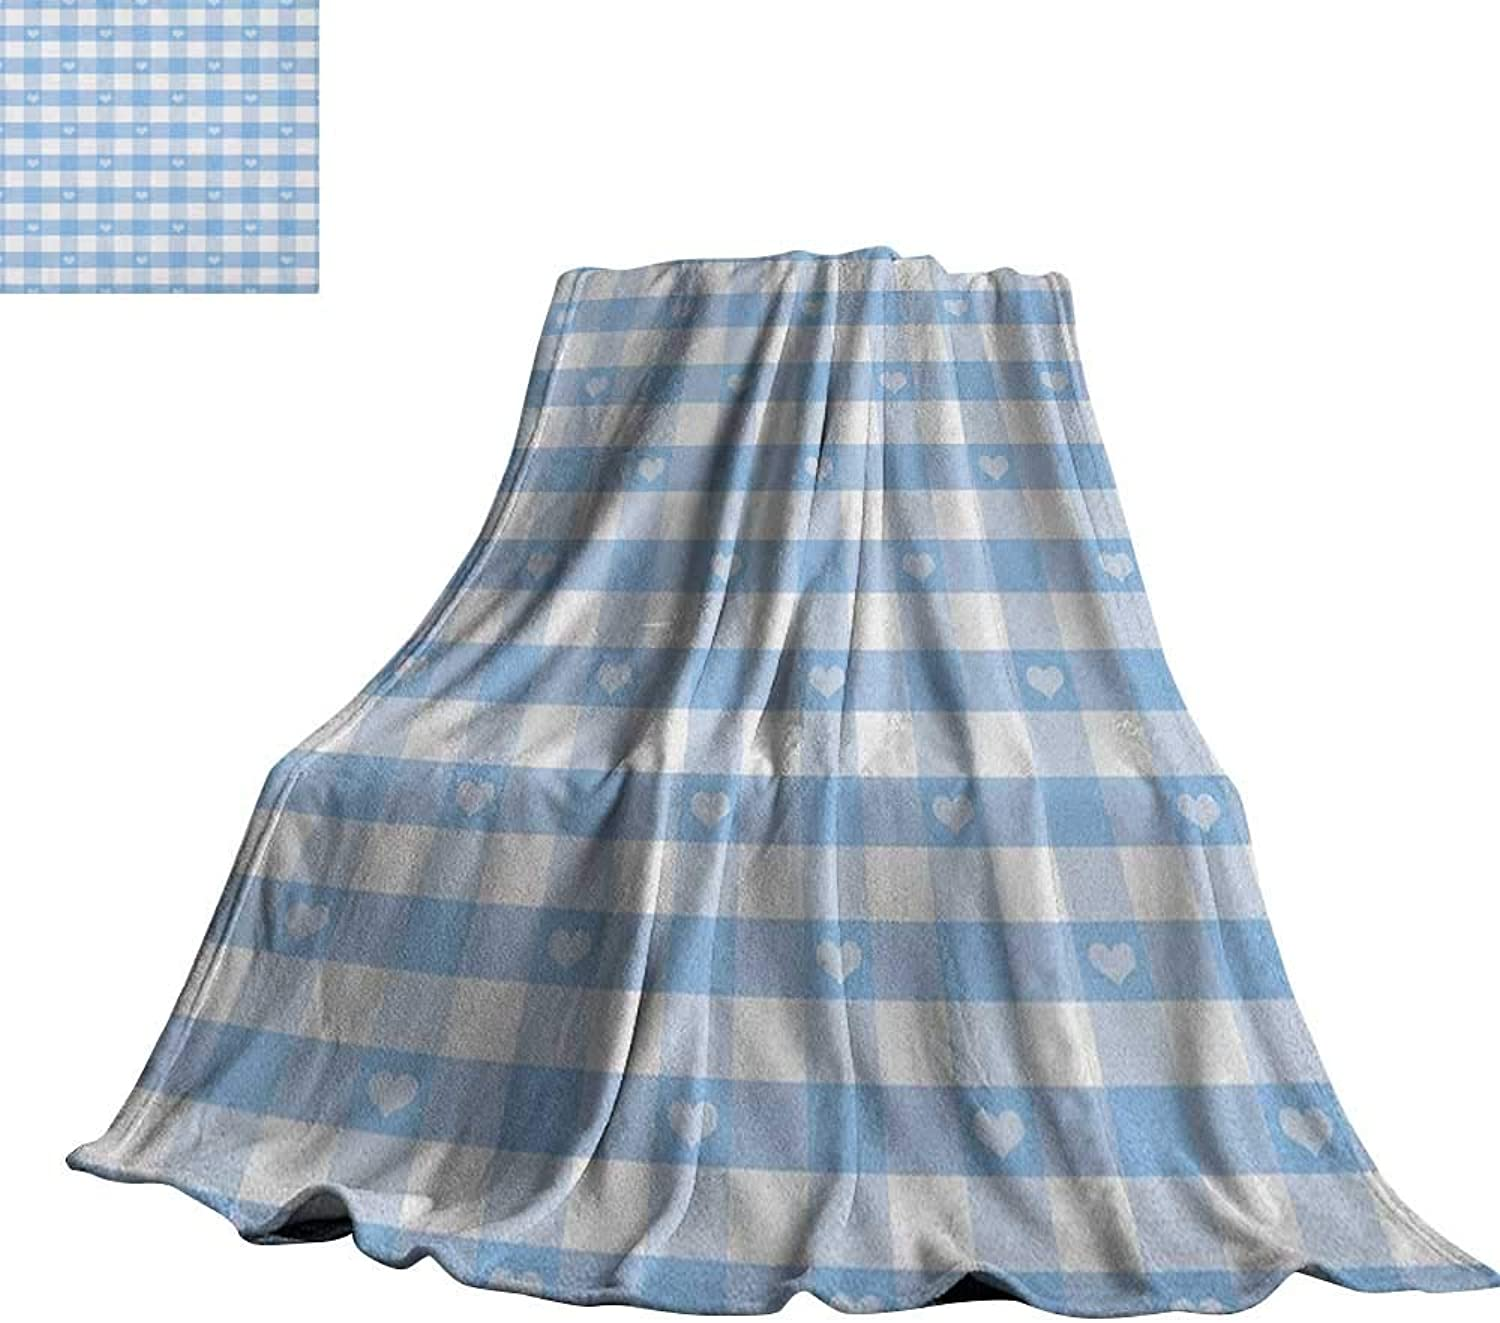 RenteriaDecor Checkered,Throw Blankets Gingham Motif with Cute Little Hearts Pastel bluee Baby Shower Kids Theme Lightweight Plush Throws 60 x50